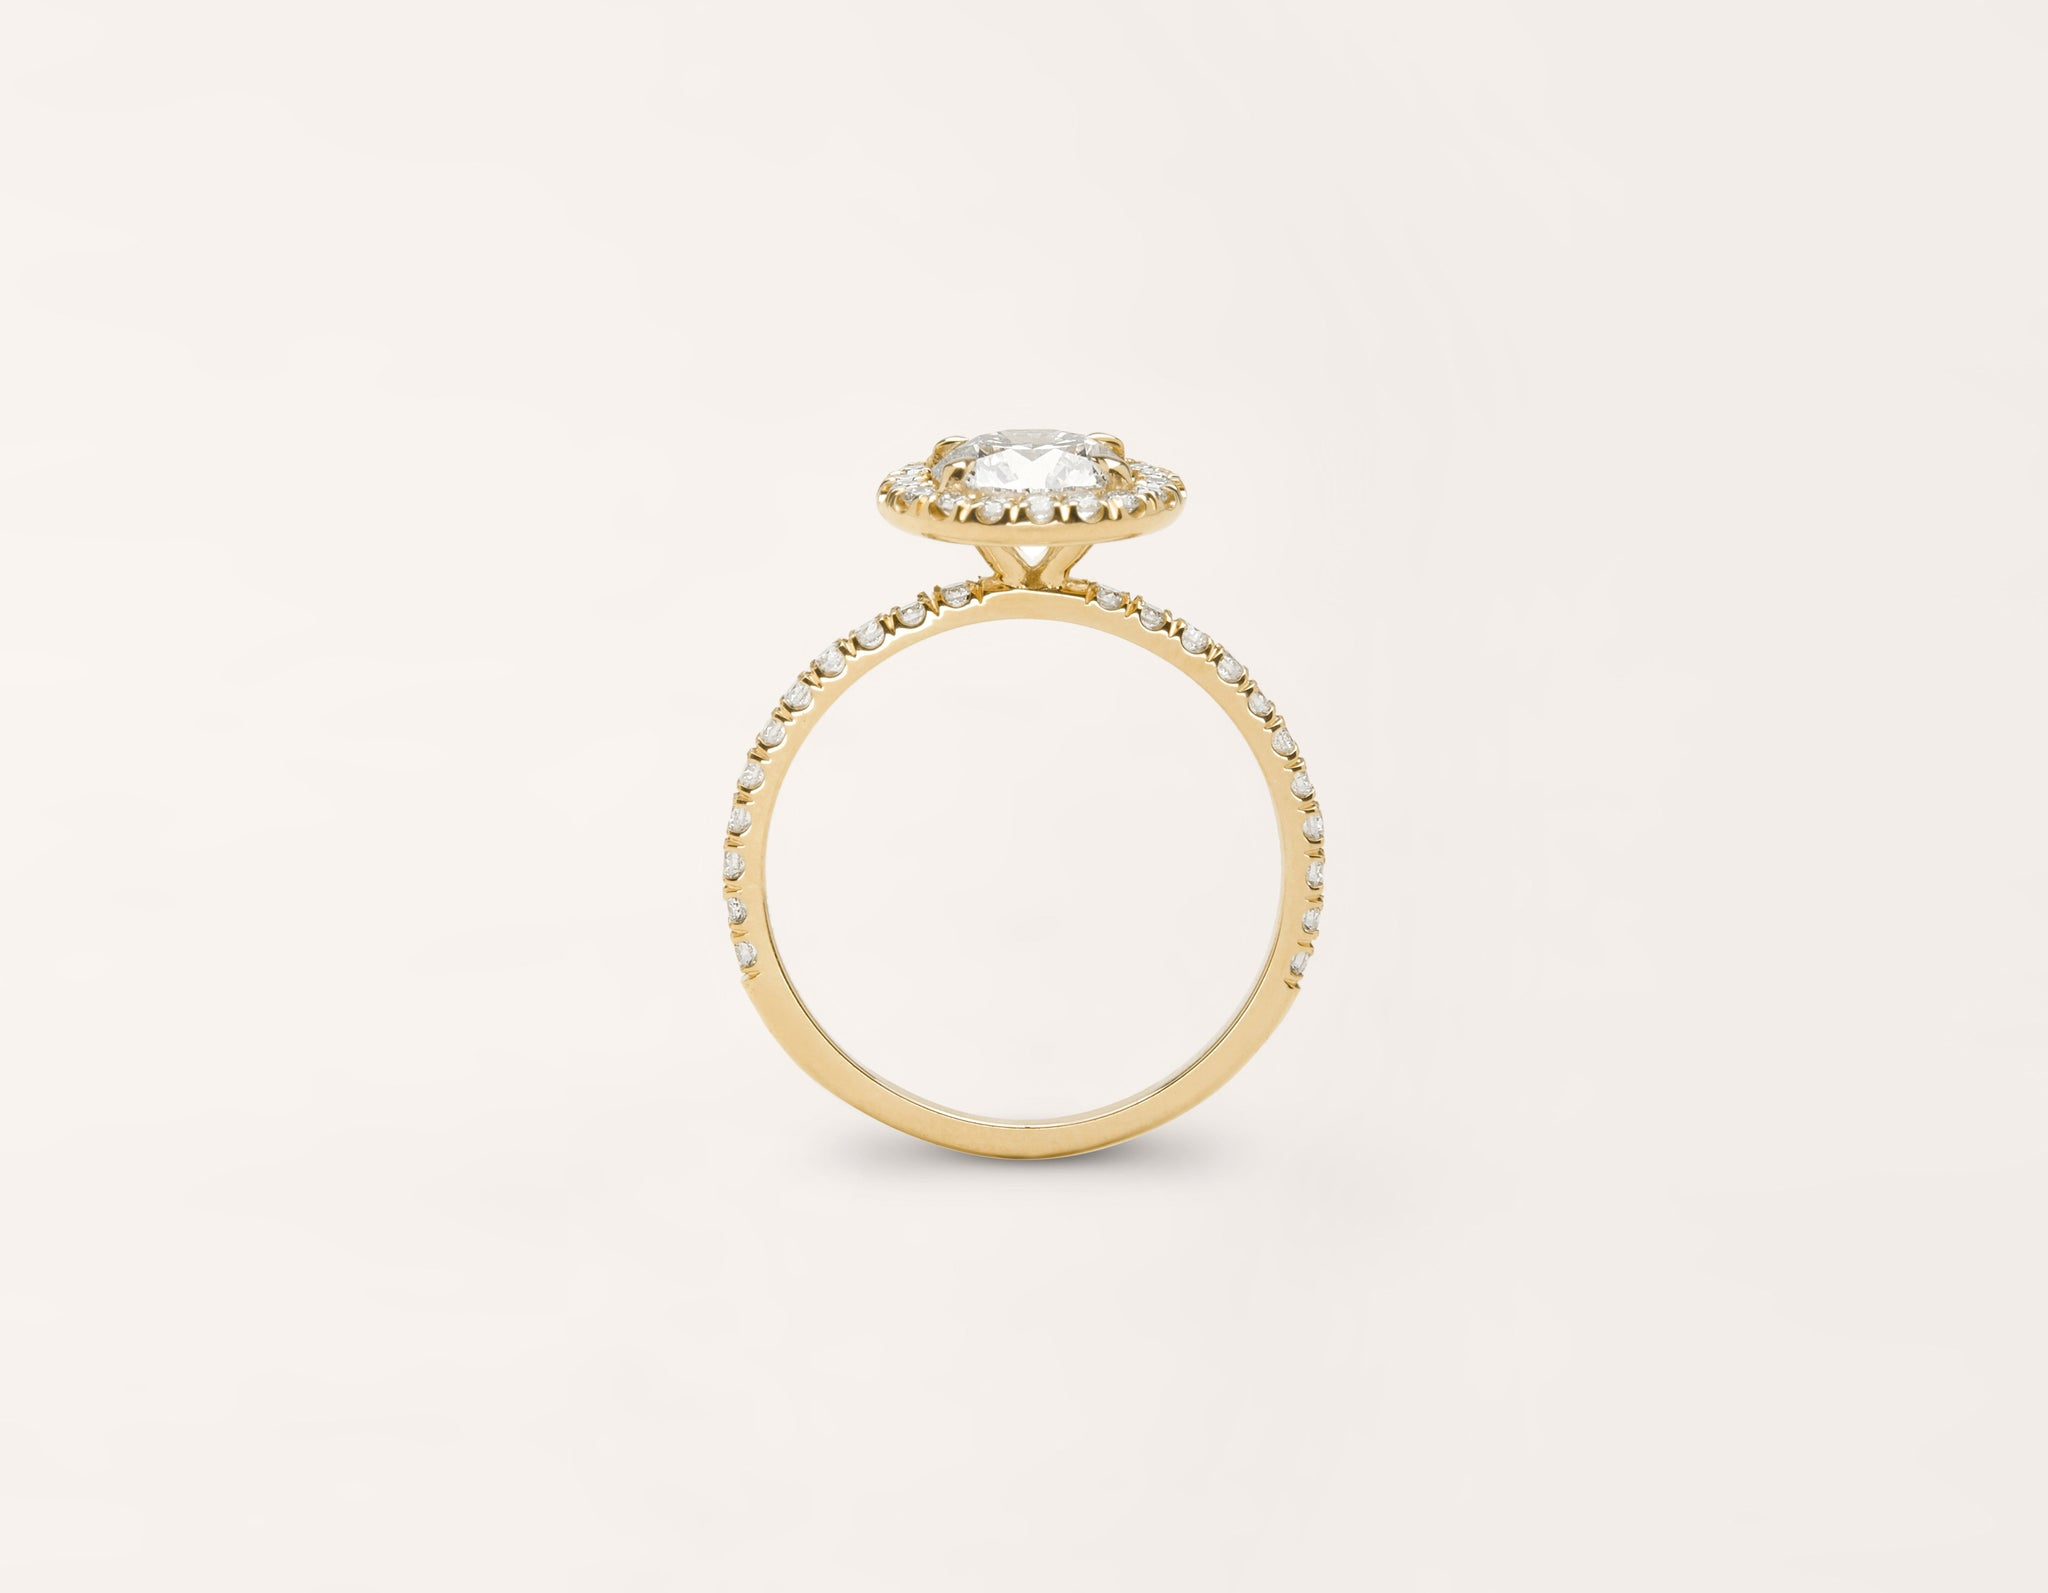 Vrai and Oro classic The Halo diamond pave engagement ring 18k solid yellow gold sustainable jewelry